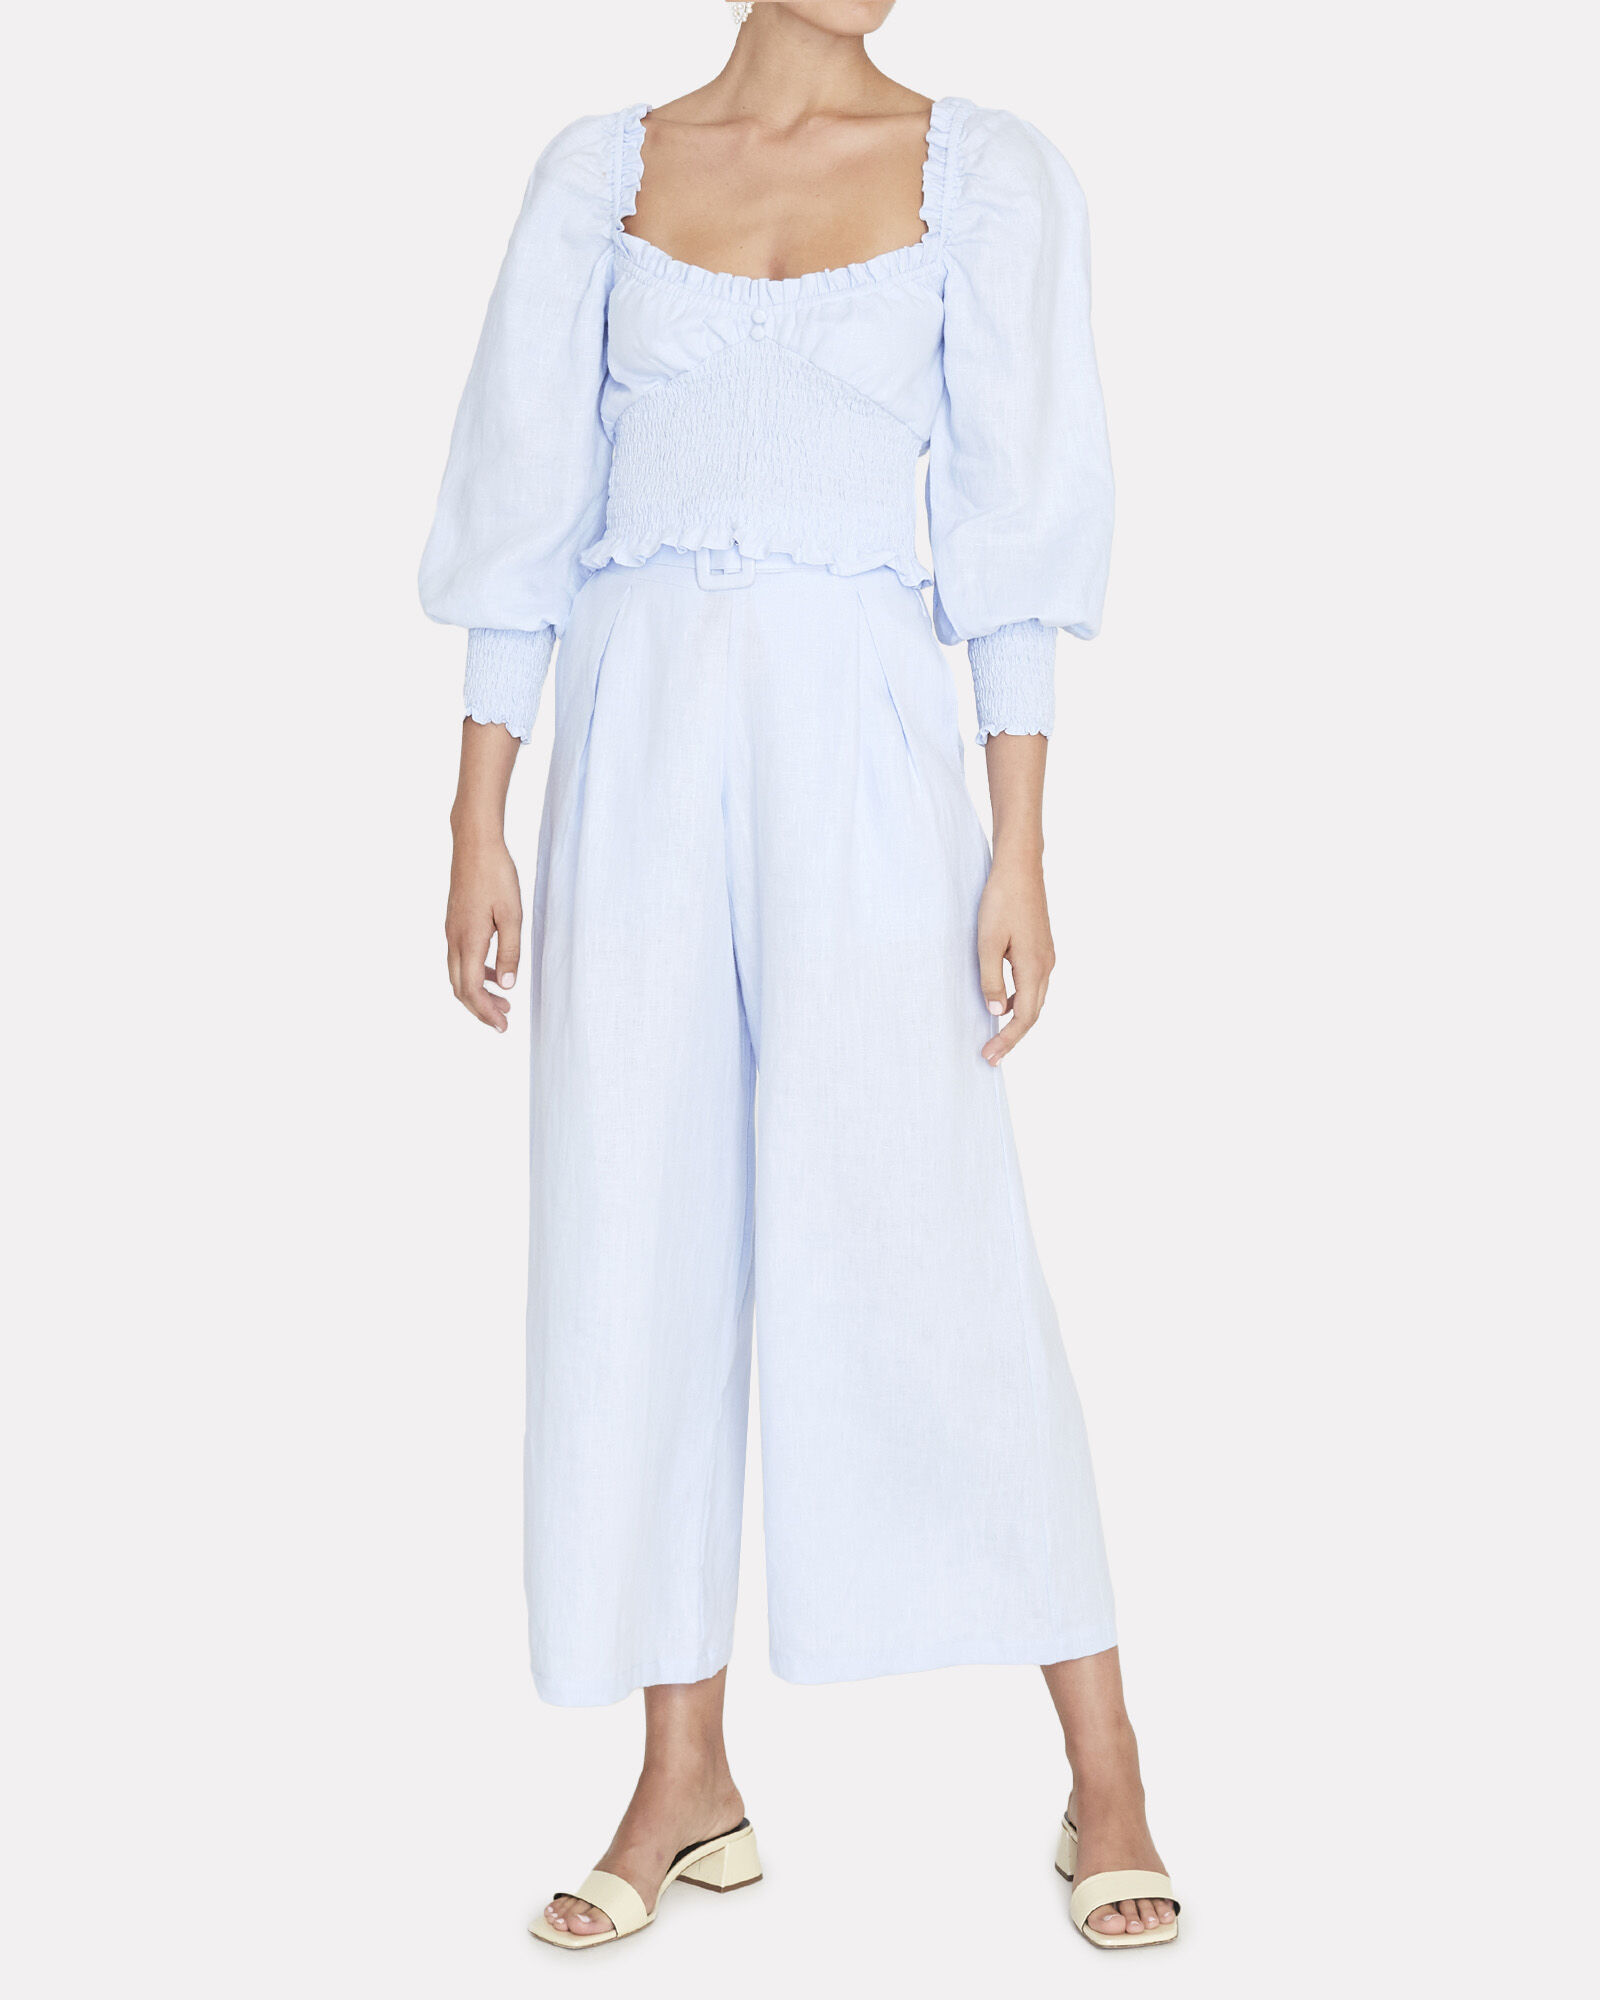 Lena Wide-Leg Linen Pants, LIGHT BLUE, hi-res